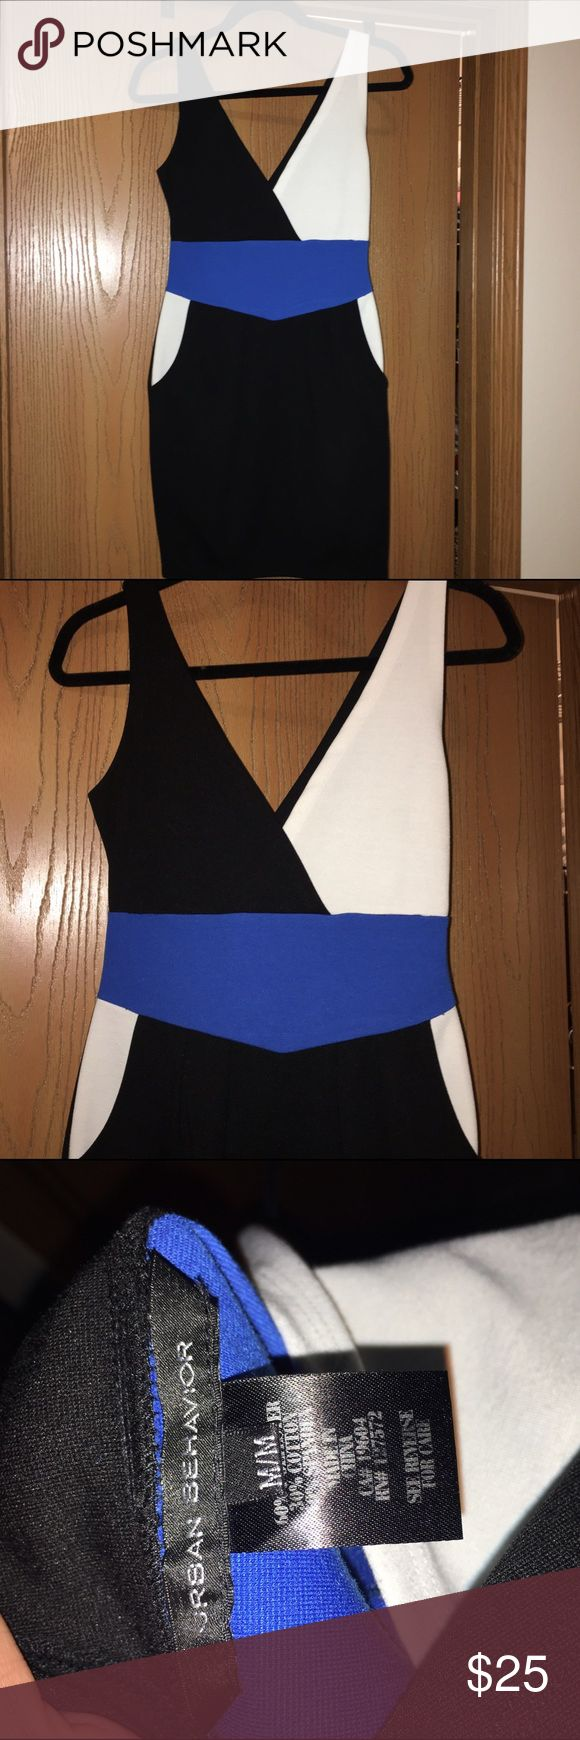 Urban Behavior Color Block Dress Black, white and blue color block dress. Two unnoticeable pockets in the front on either side. This is more of a midi dress but can be shorter depending on your height. Urban Behavior, size M. Worn once. Urban Behavior Dresses